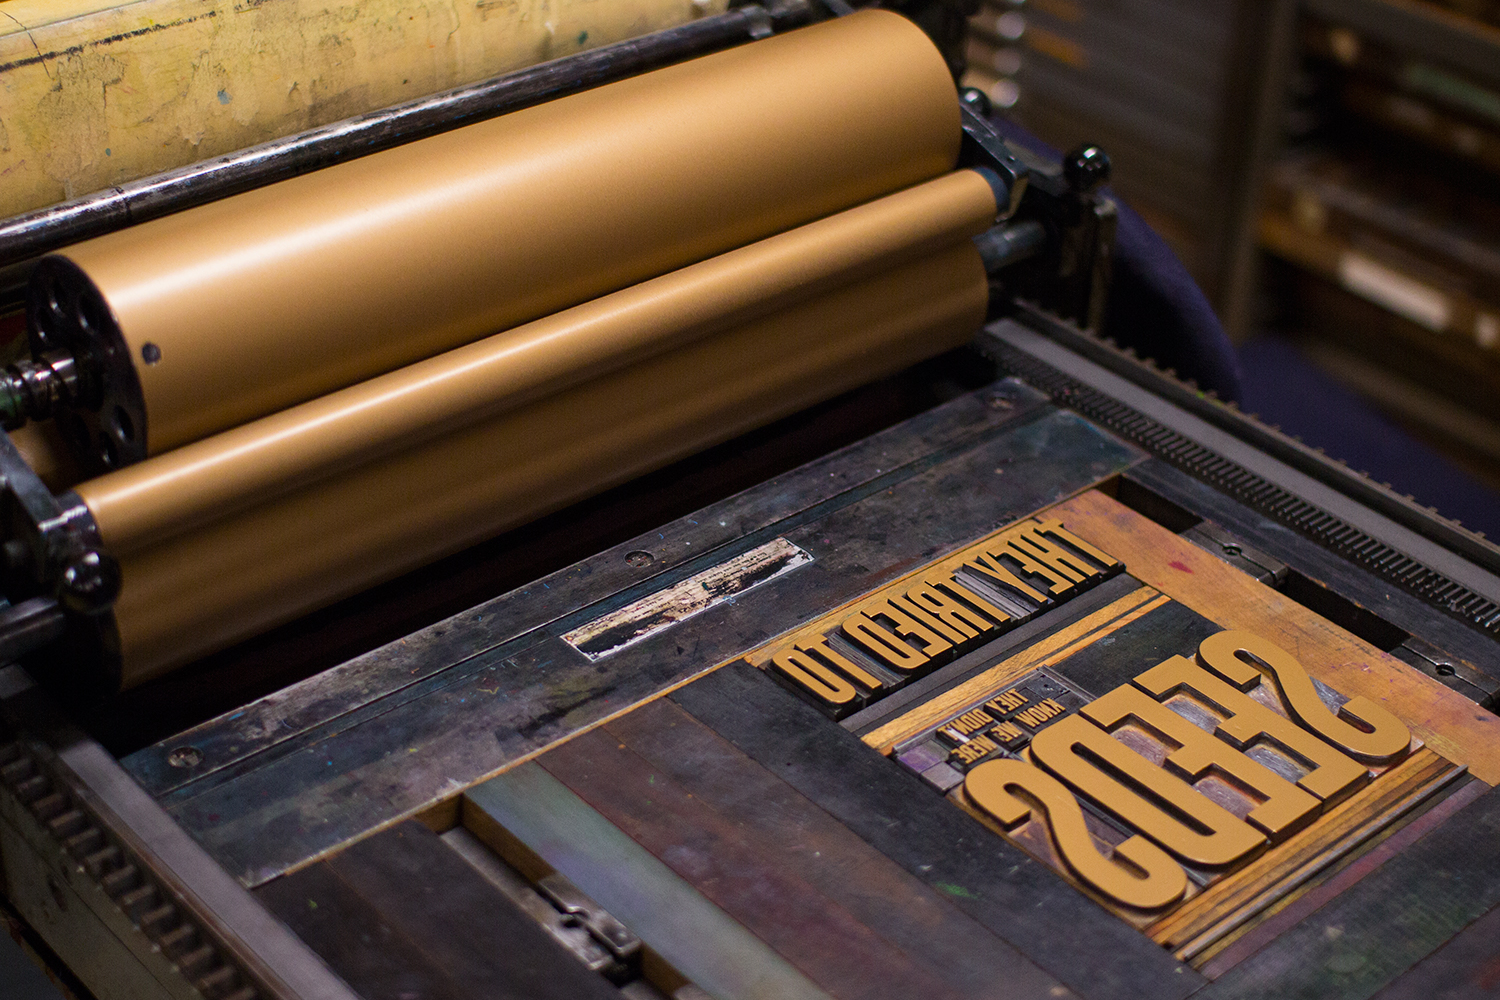 What is letterpress printing? - Letterpress is a form of relief printing, where a forme composed of movable type (or another raised surface) is inked and printed repeatedly using a press.